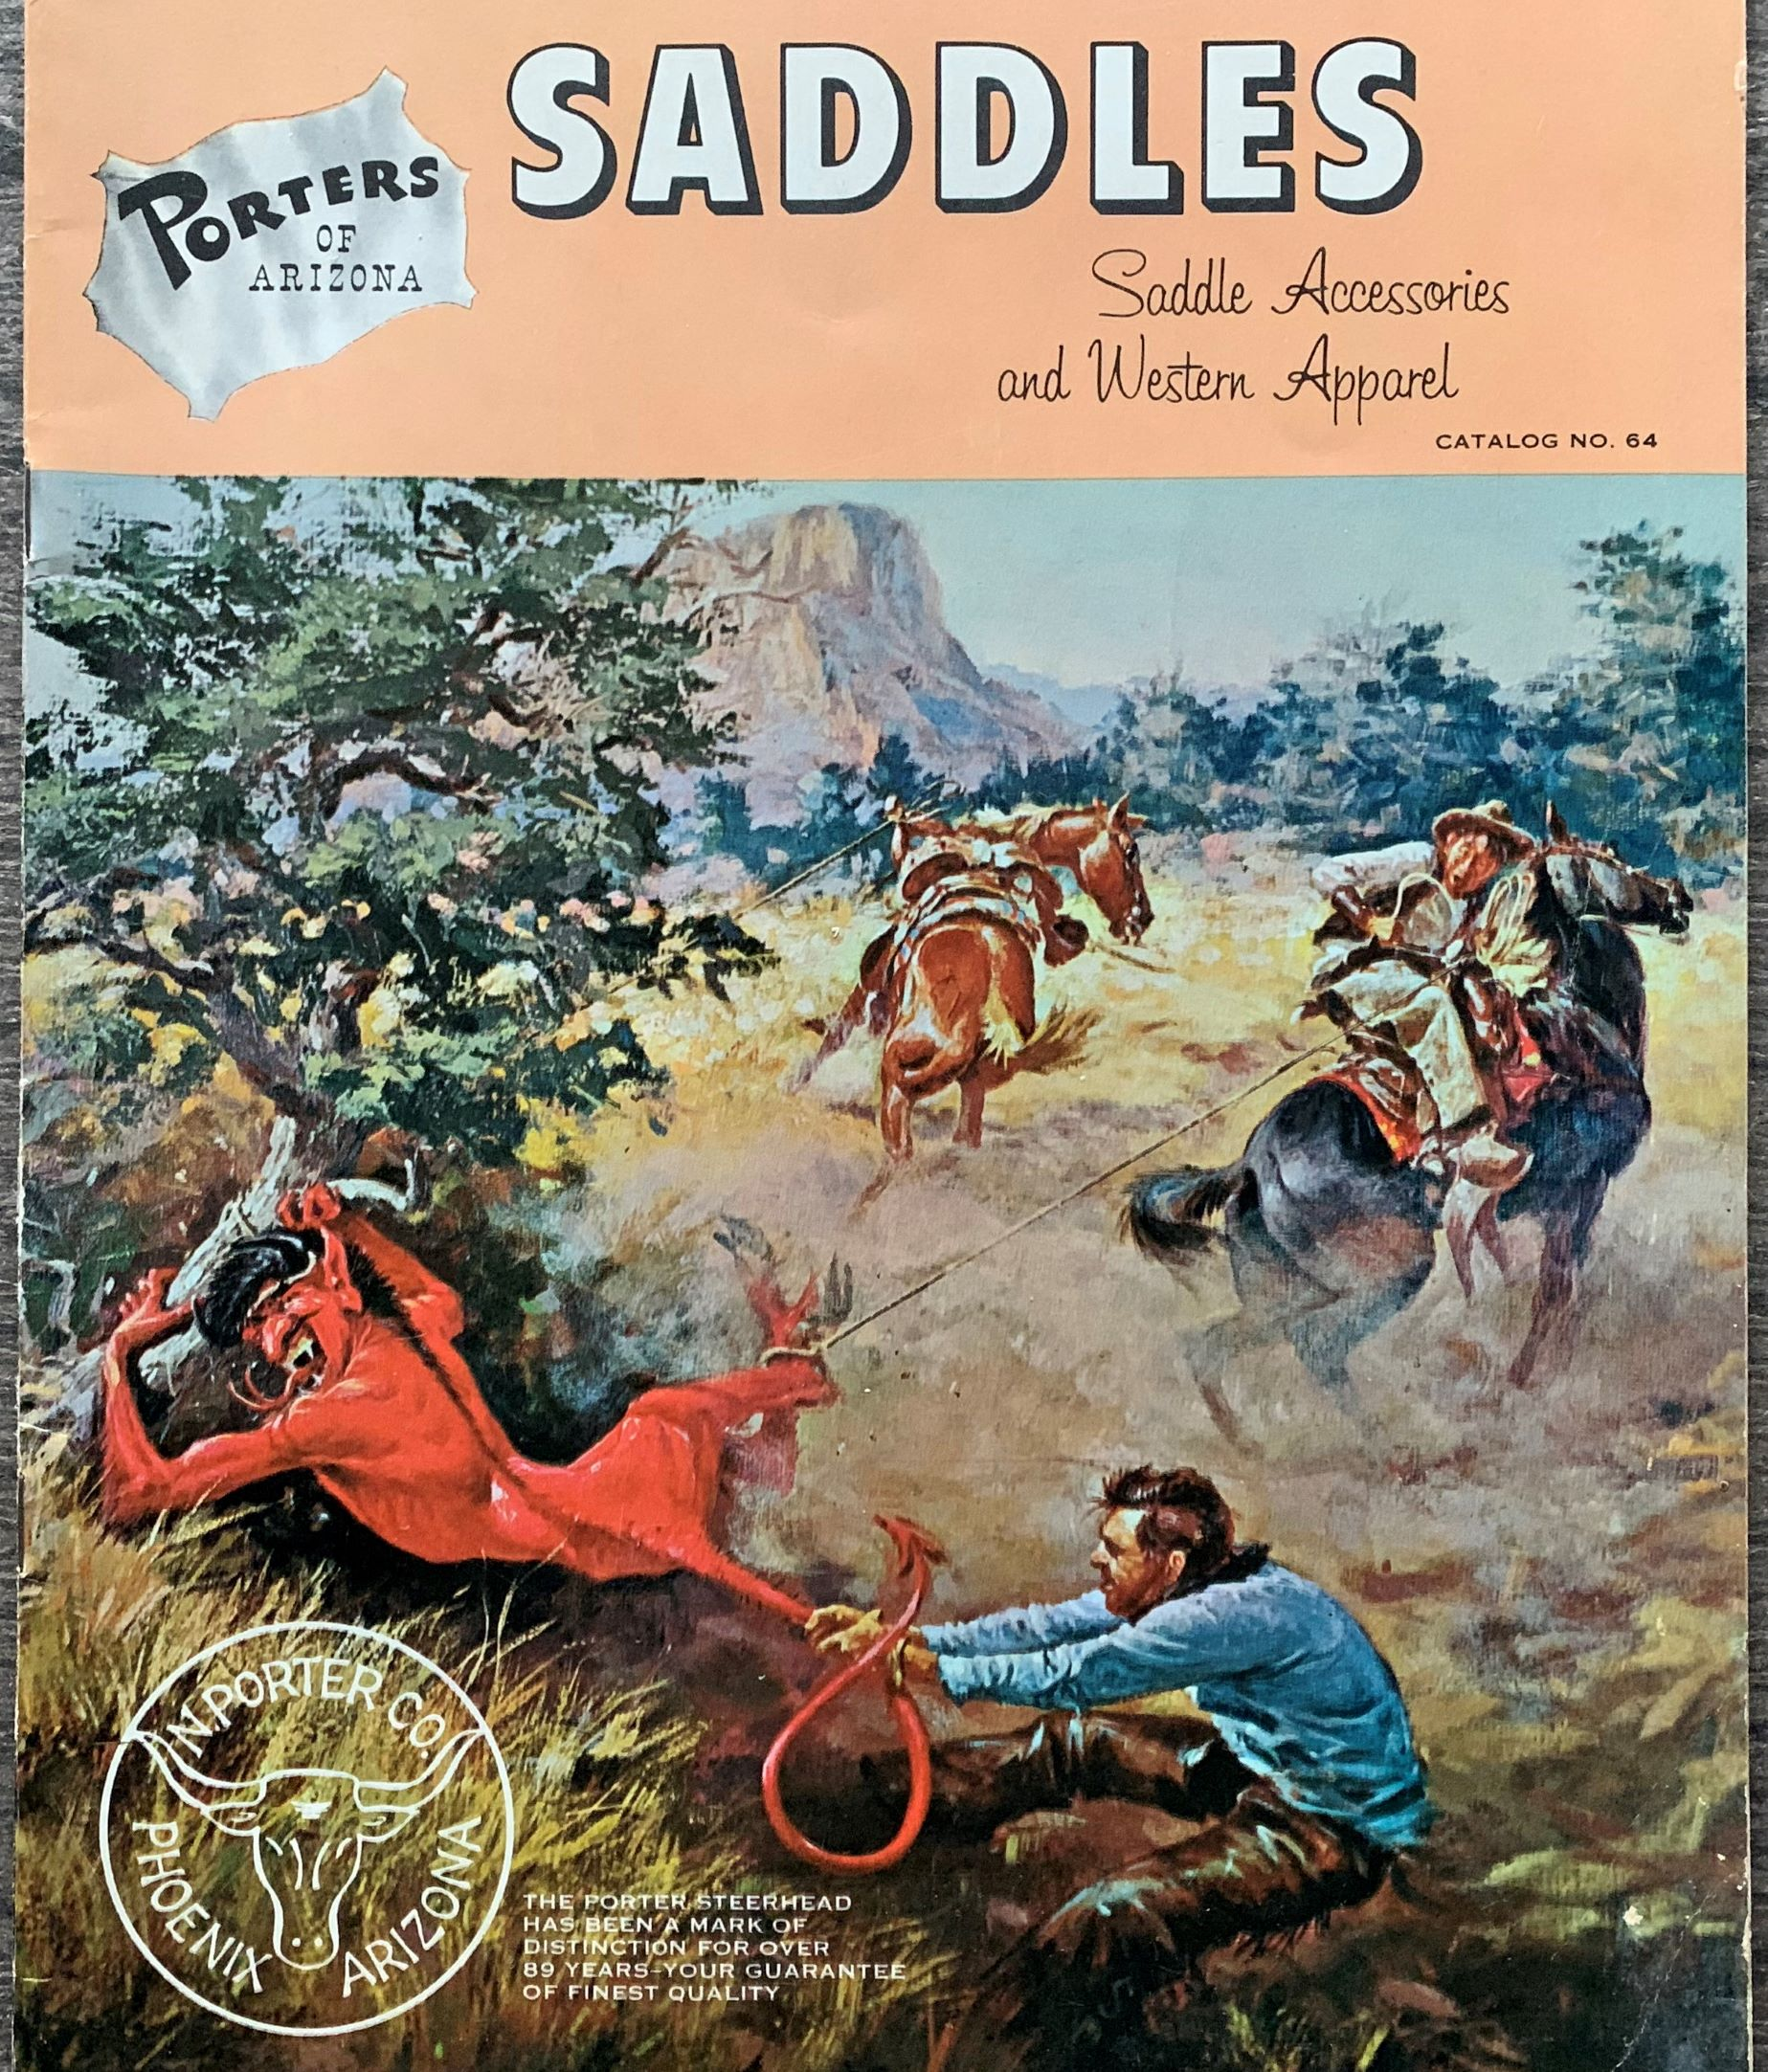 Image for Porters of Arizona, Saddles, Saddle Accessories, and Western Apparel, catalog no. 64. (cover title).